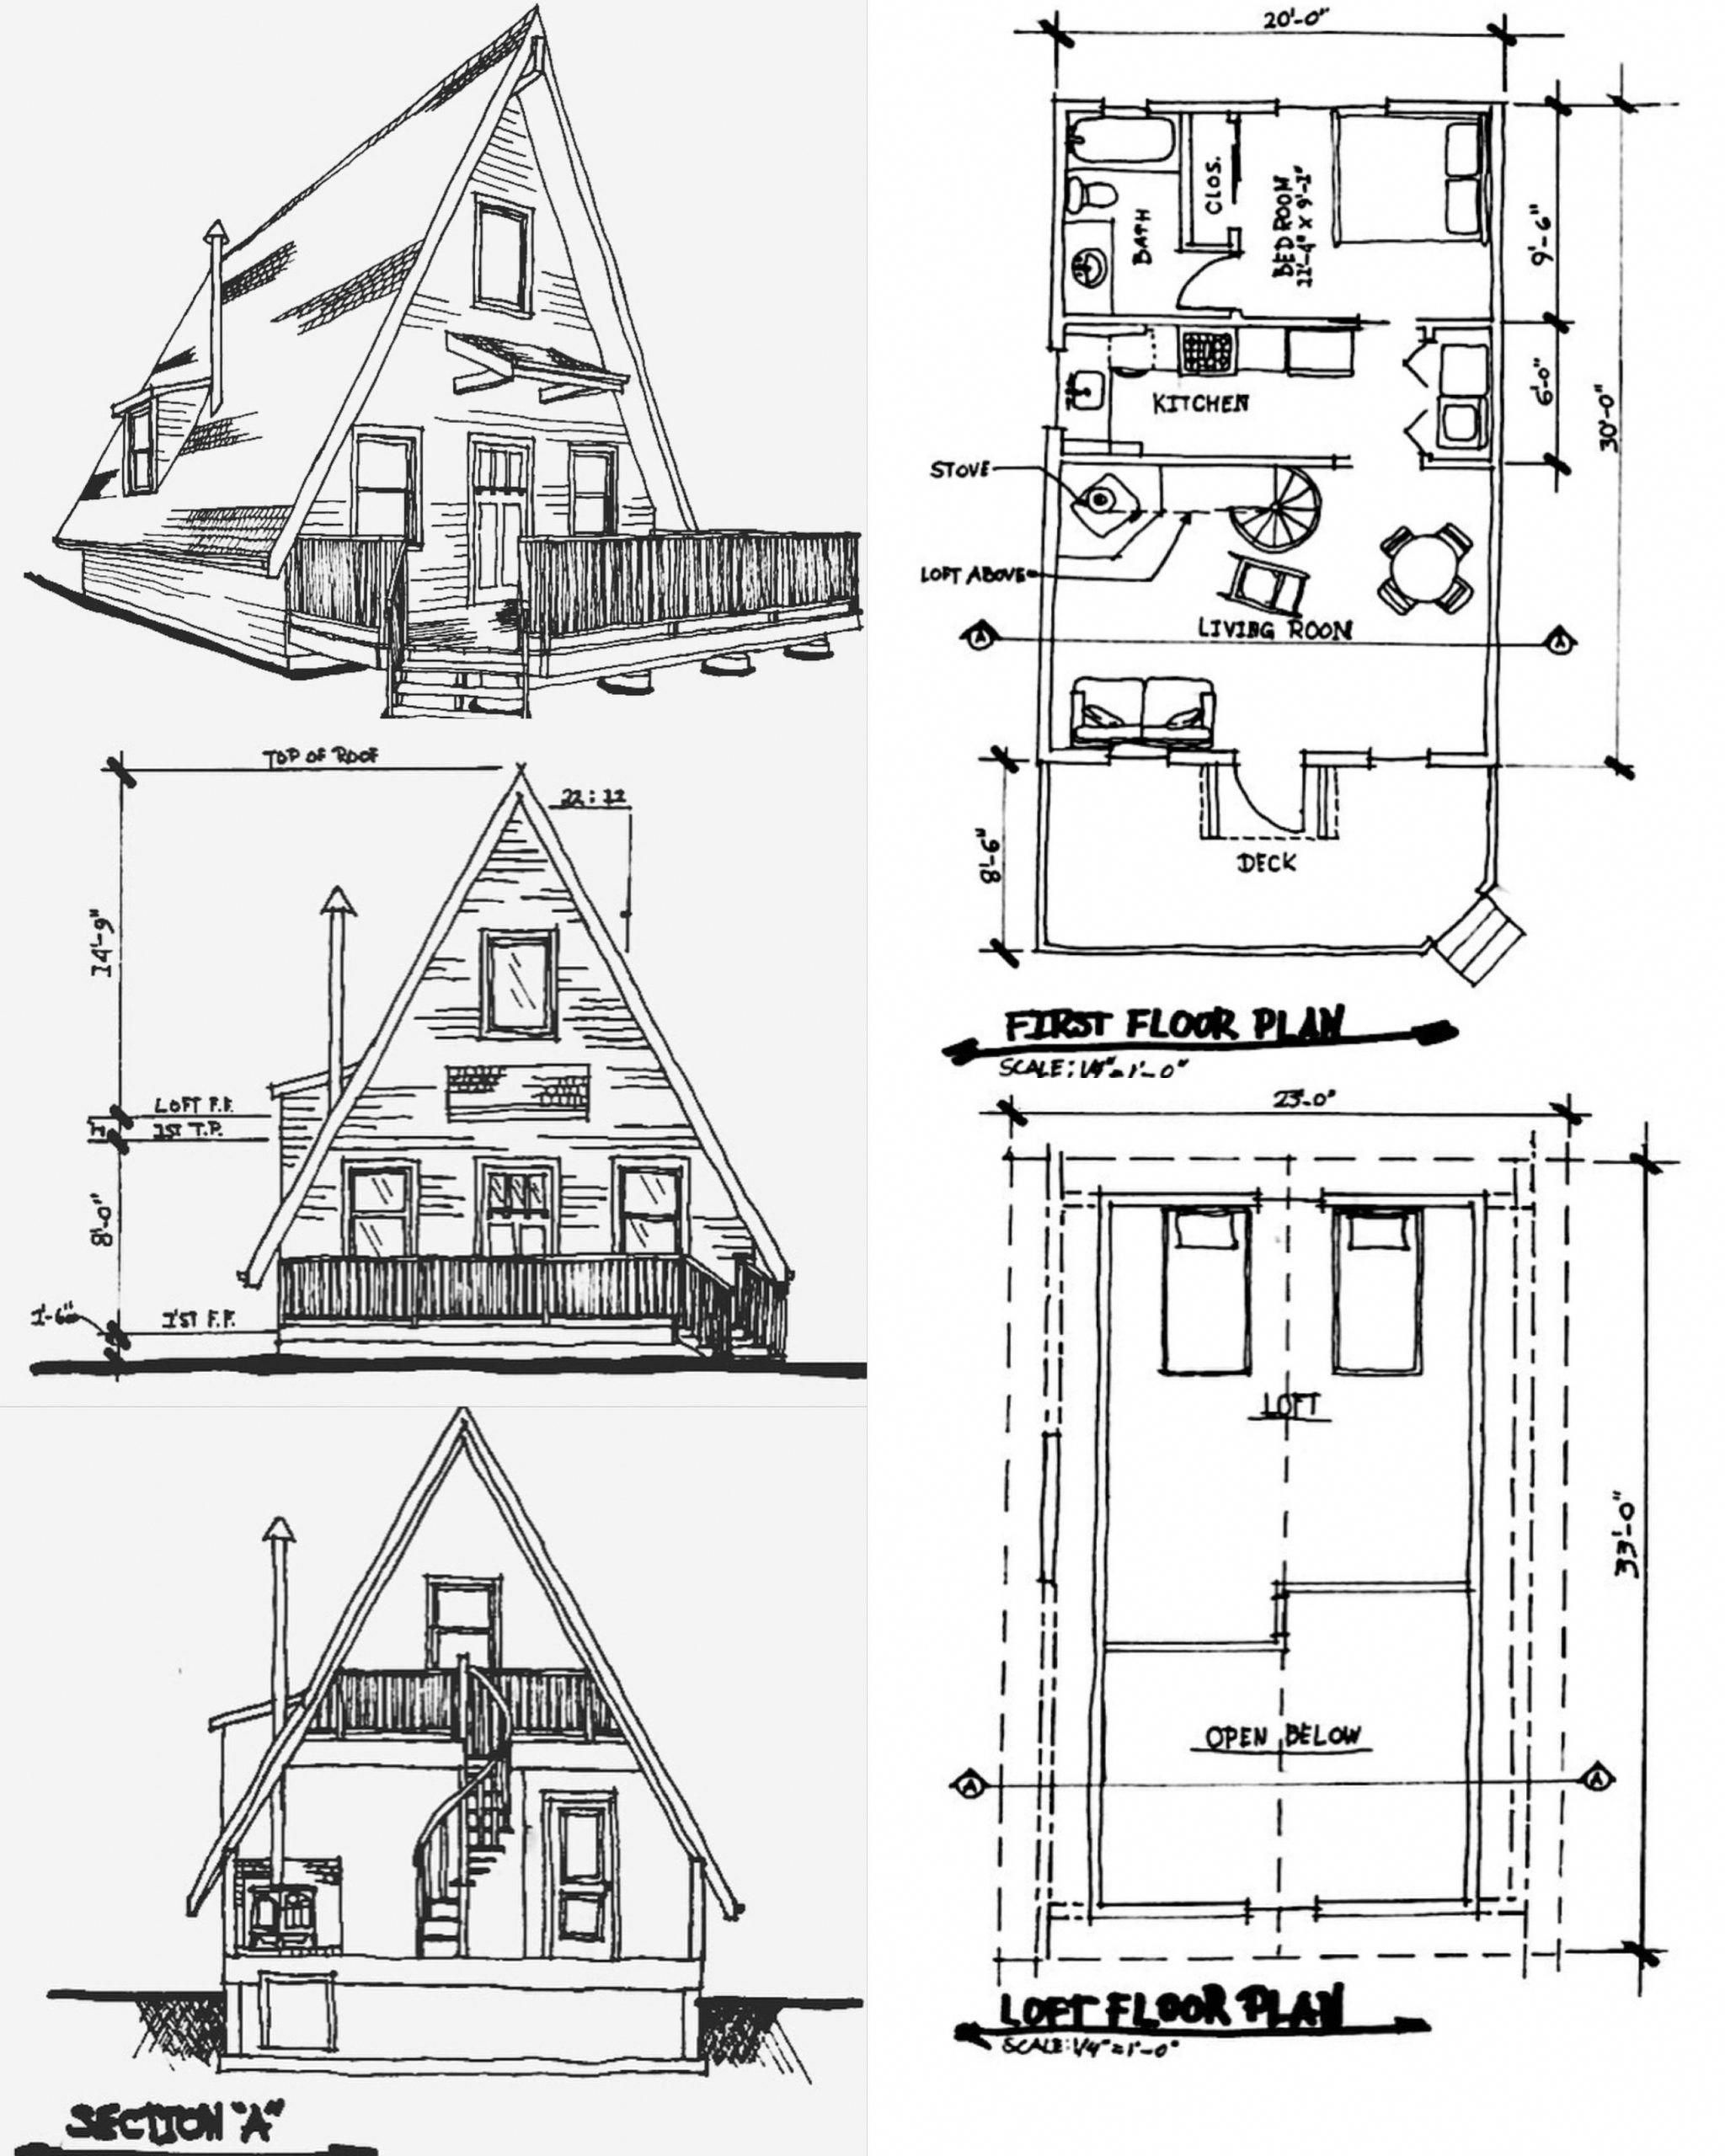 Triangular House House Triangular Aframehouse A Frame Cabin Plans Triangle House A Frame House